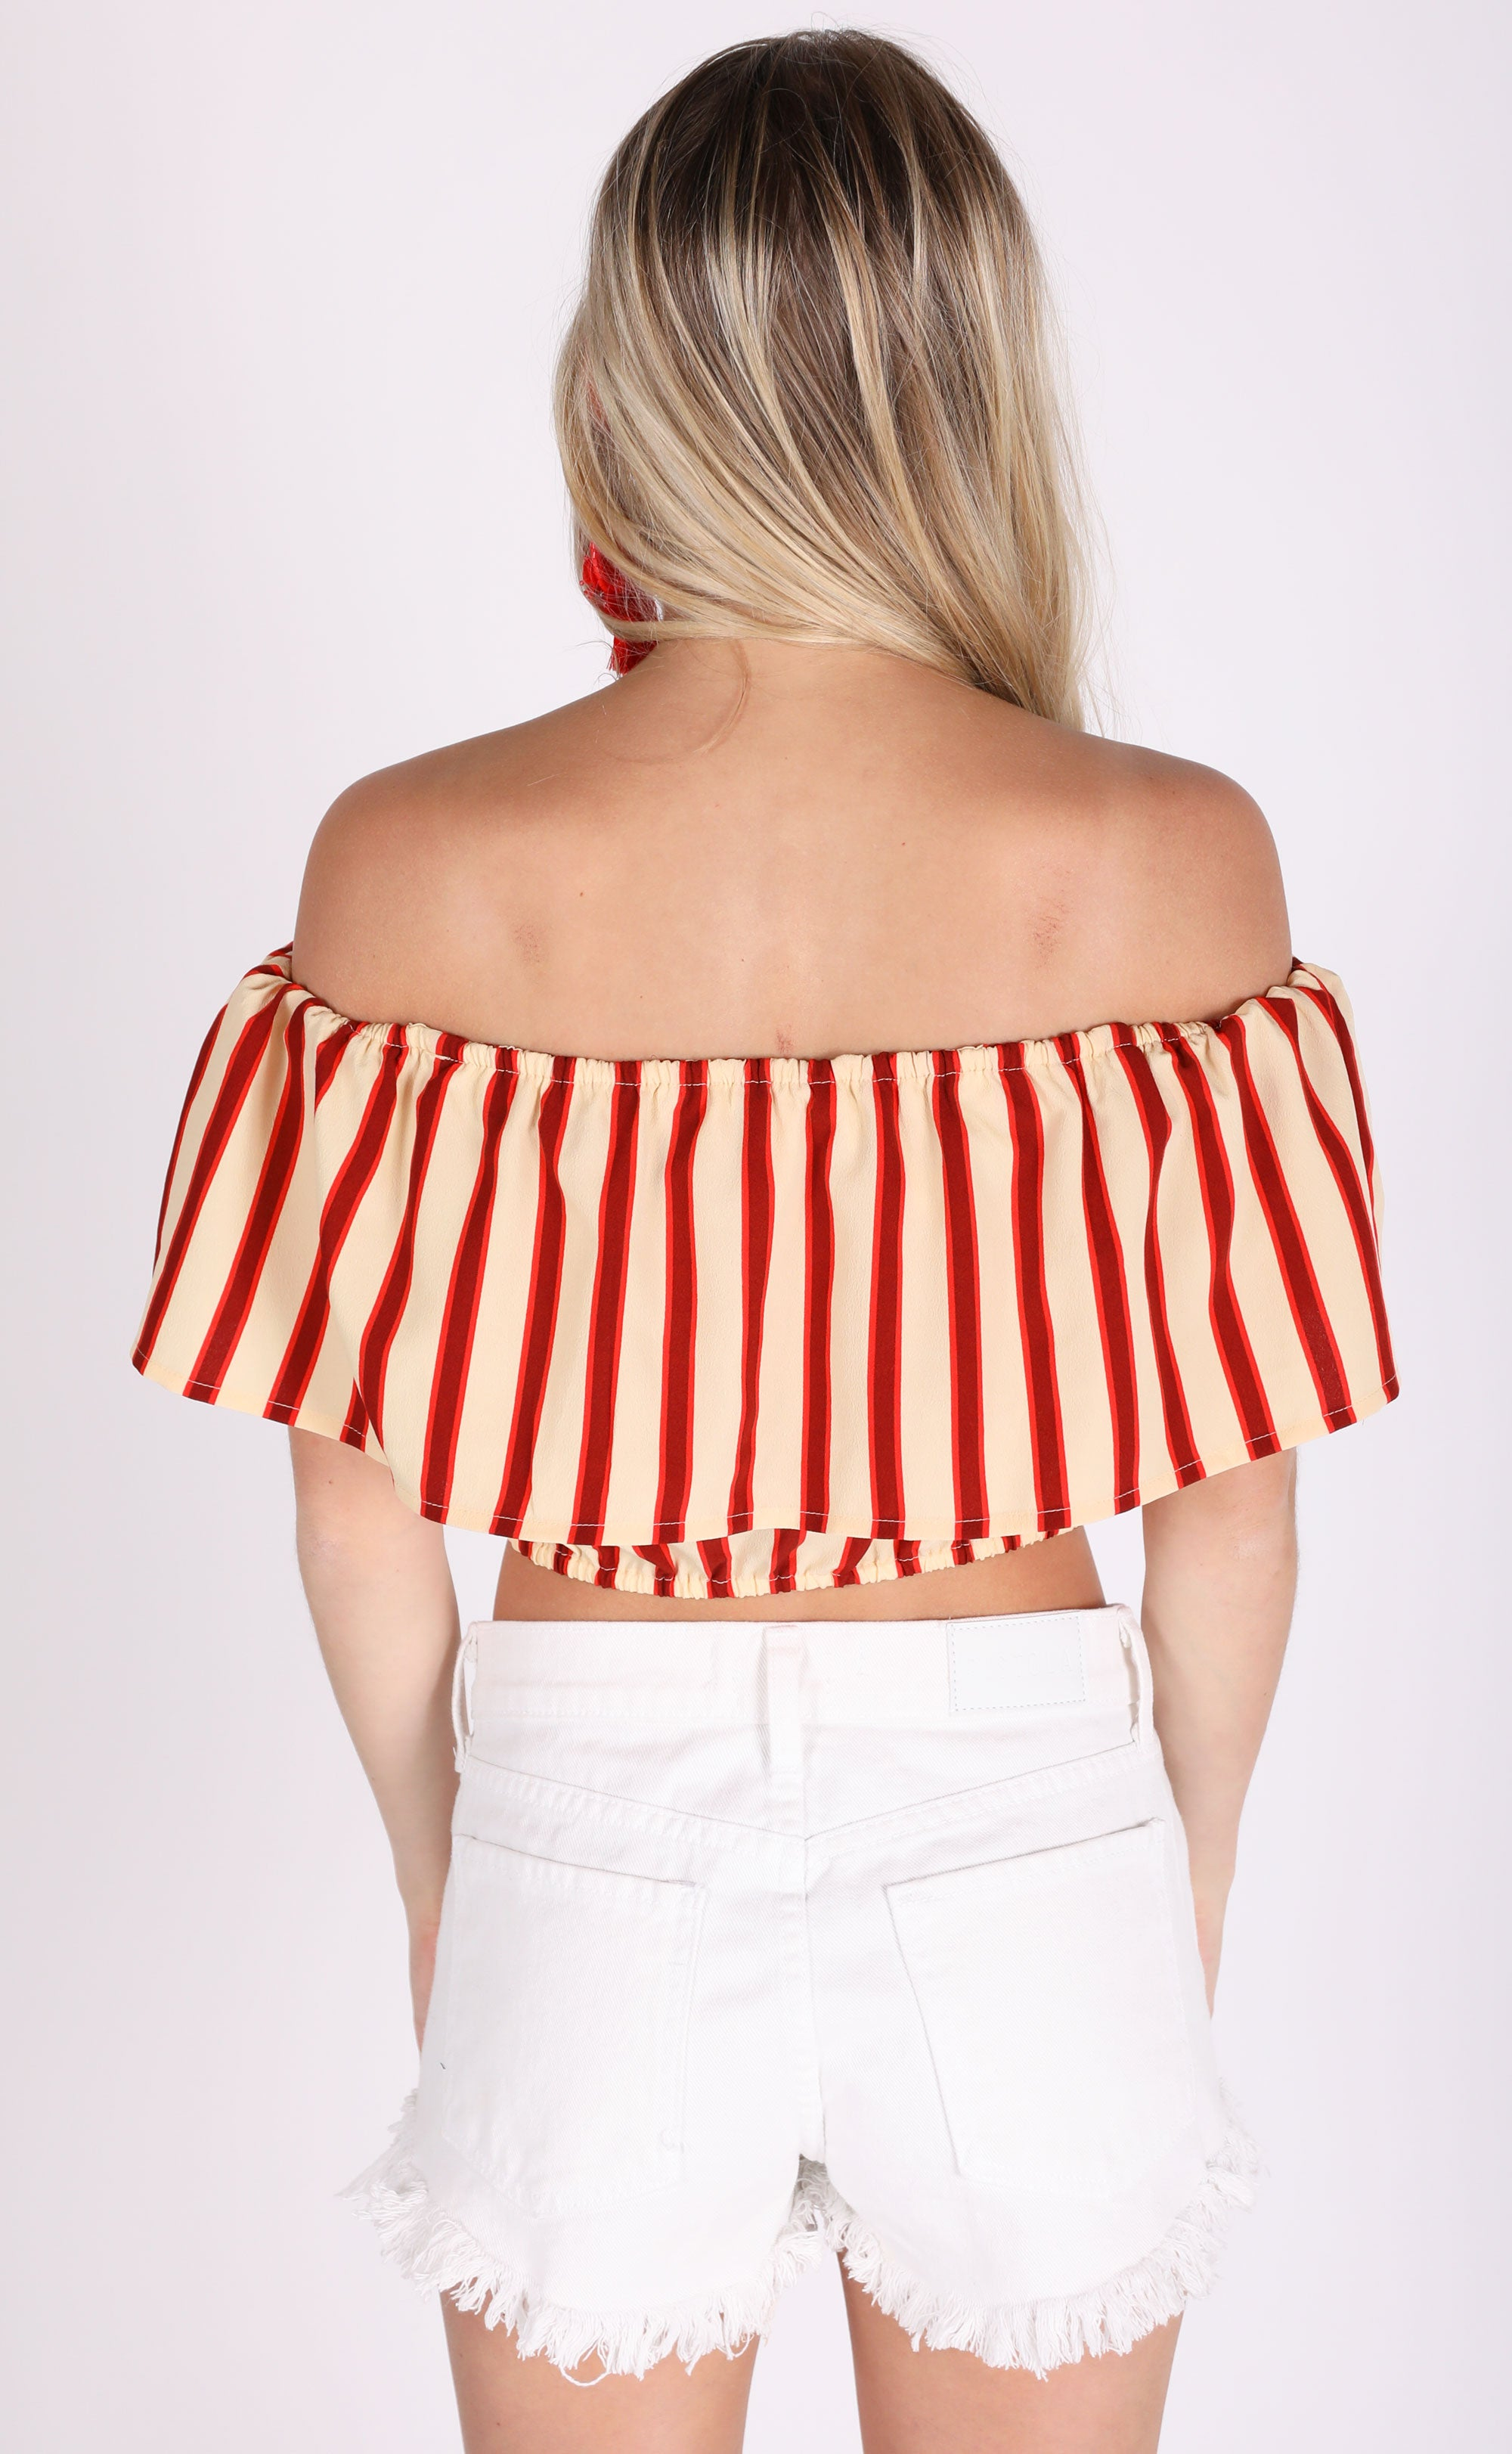 amuse society: between the lines woven top